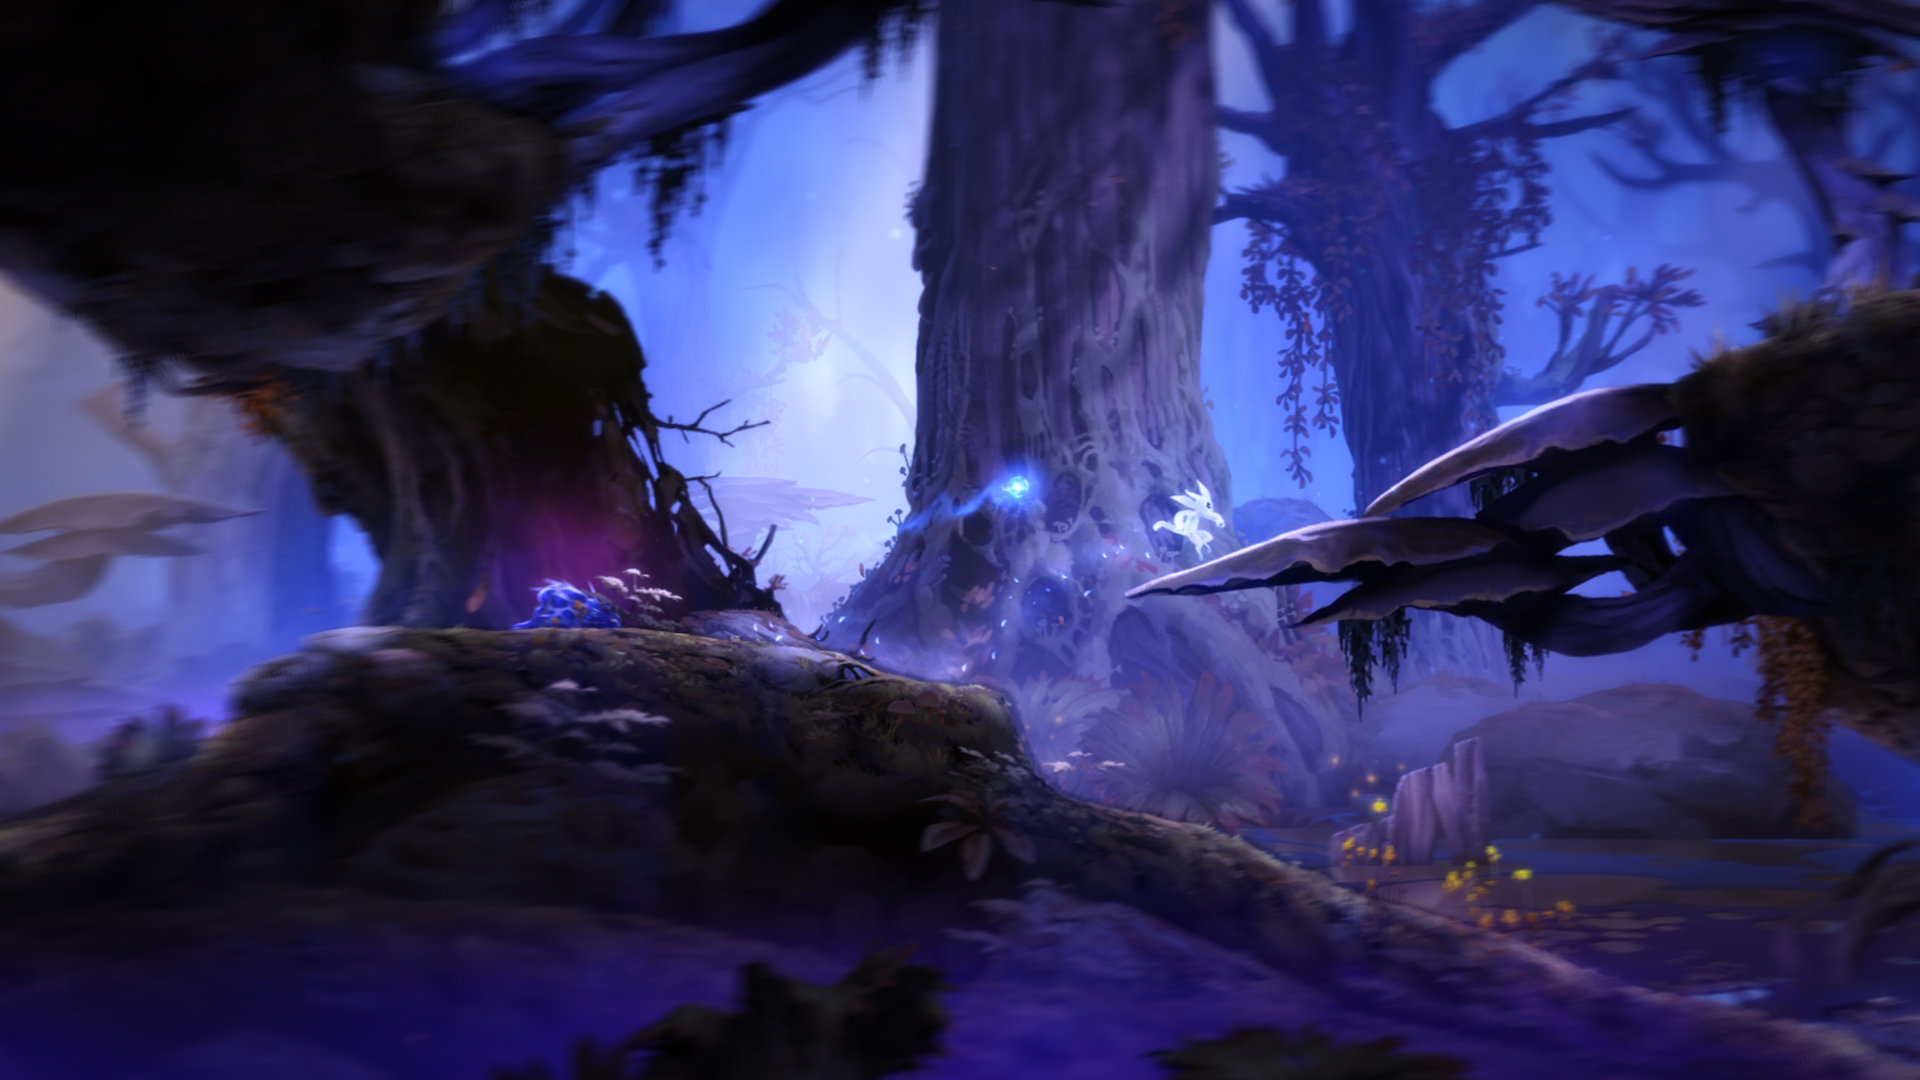 Ori And The Blind Forest Wallpapers High Quality